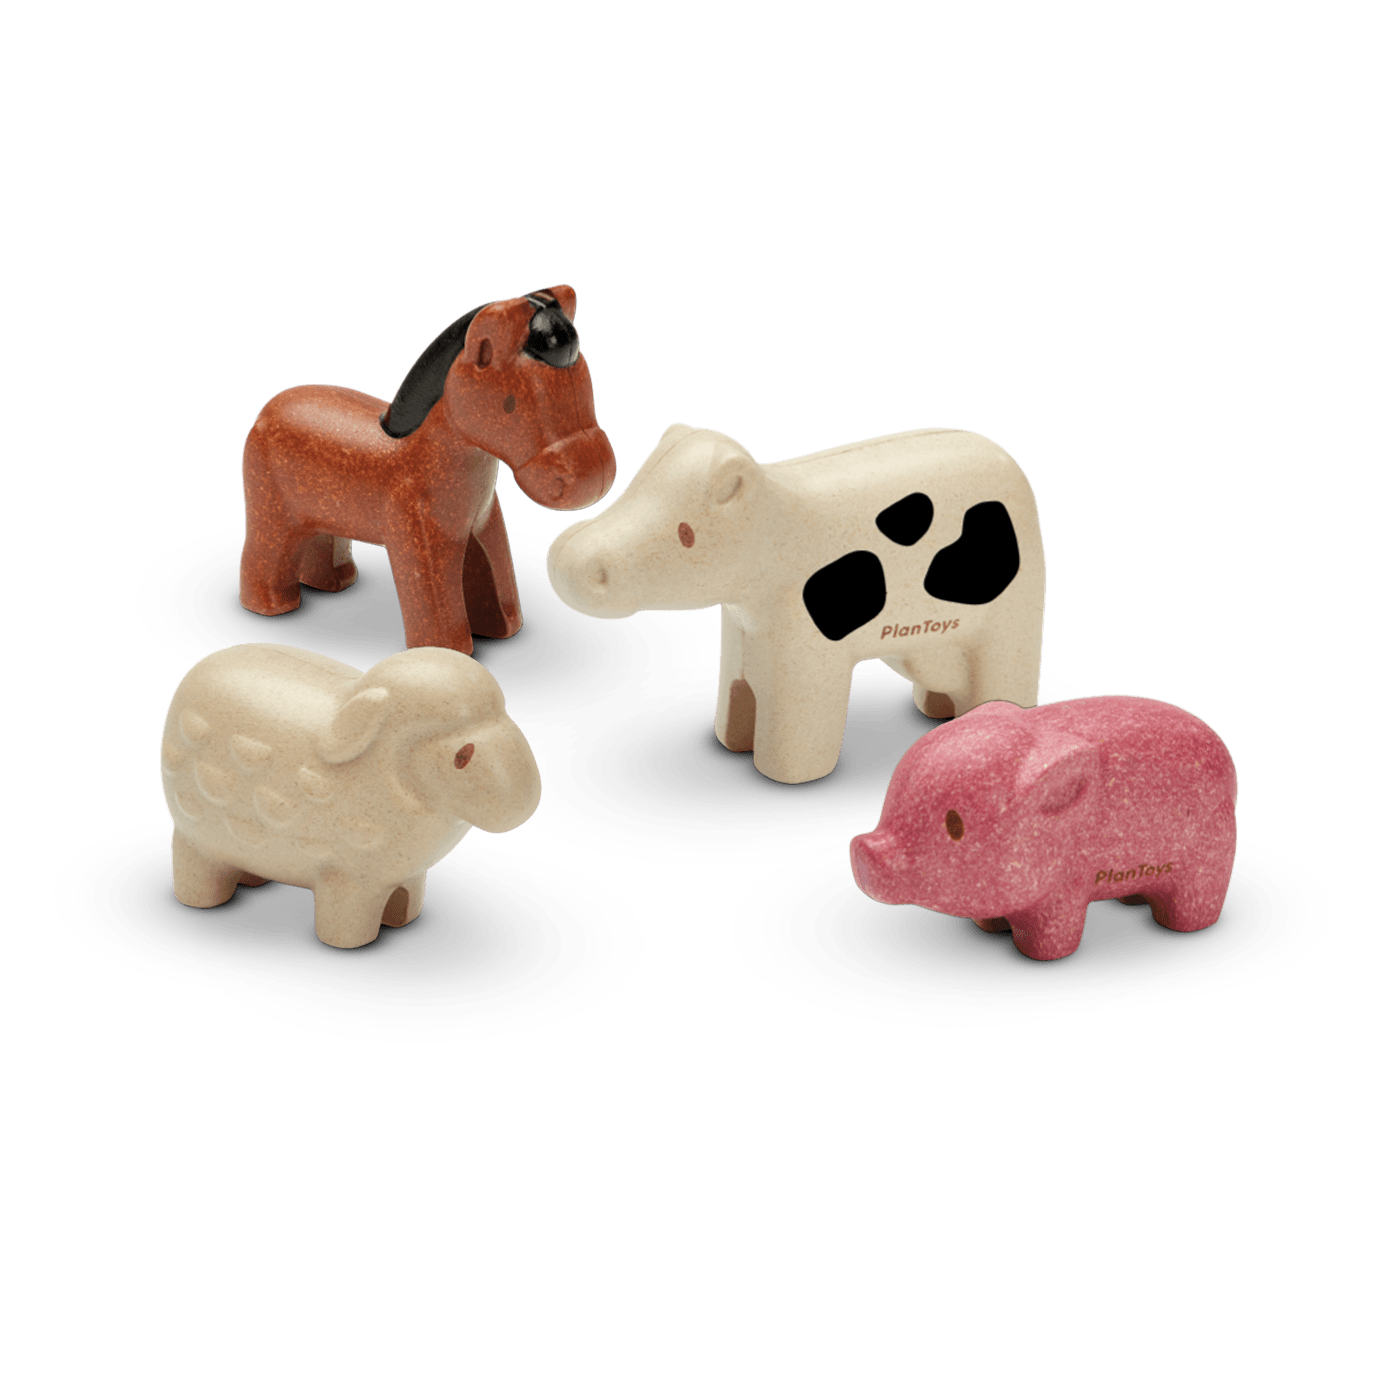 6127_PlanToys_FARM_ANIMALS_SET_Pretend_Play_Imagination_Coordination_Creative_Language_and_Communications_Social_Emotion_12m_Wooden_toys_Education_toys_Safety_Toys_Non-toxic_0.png